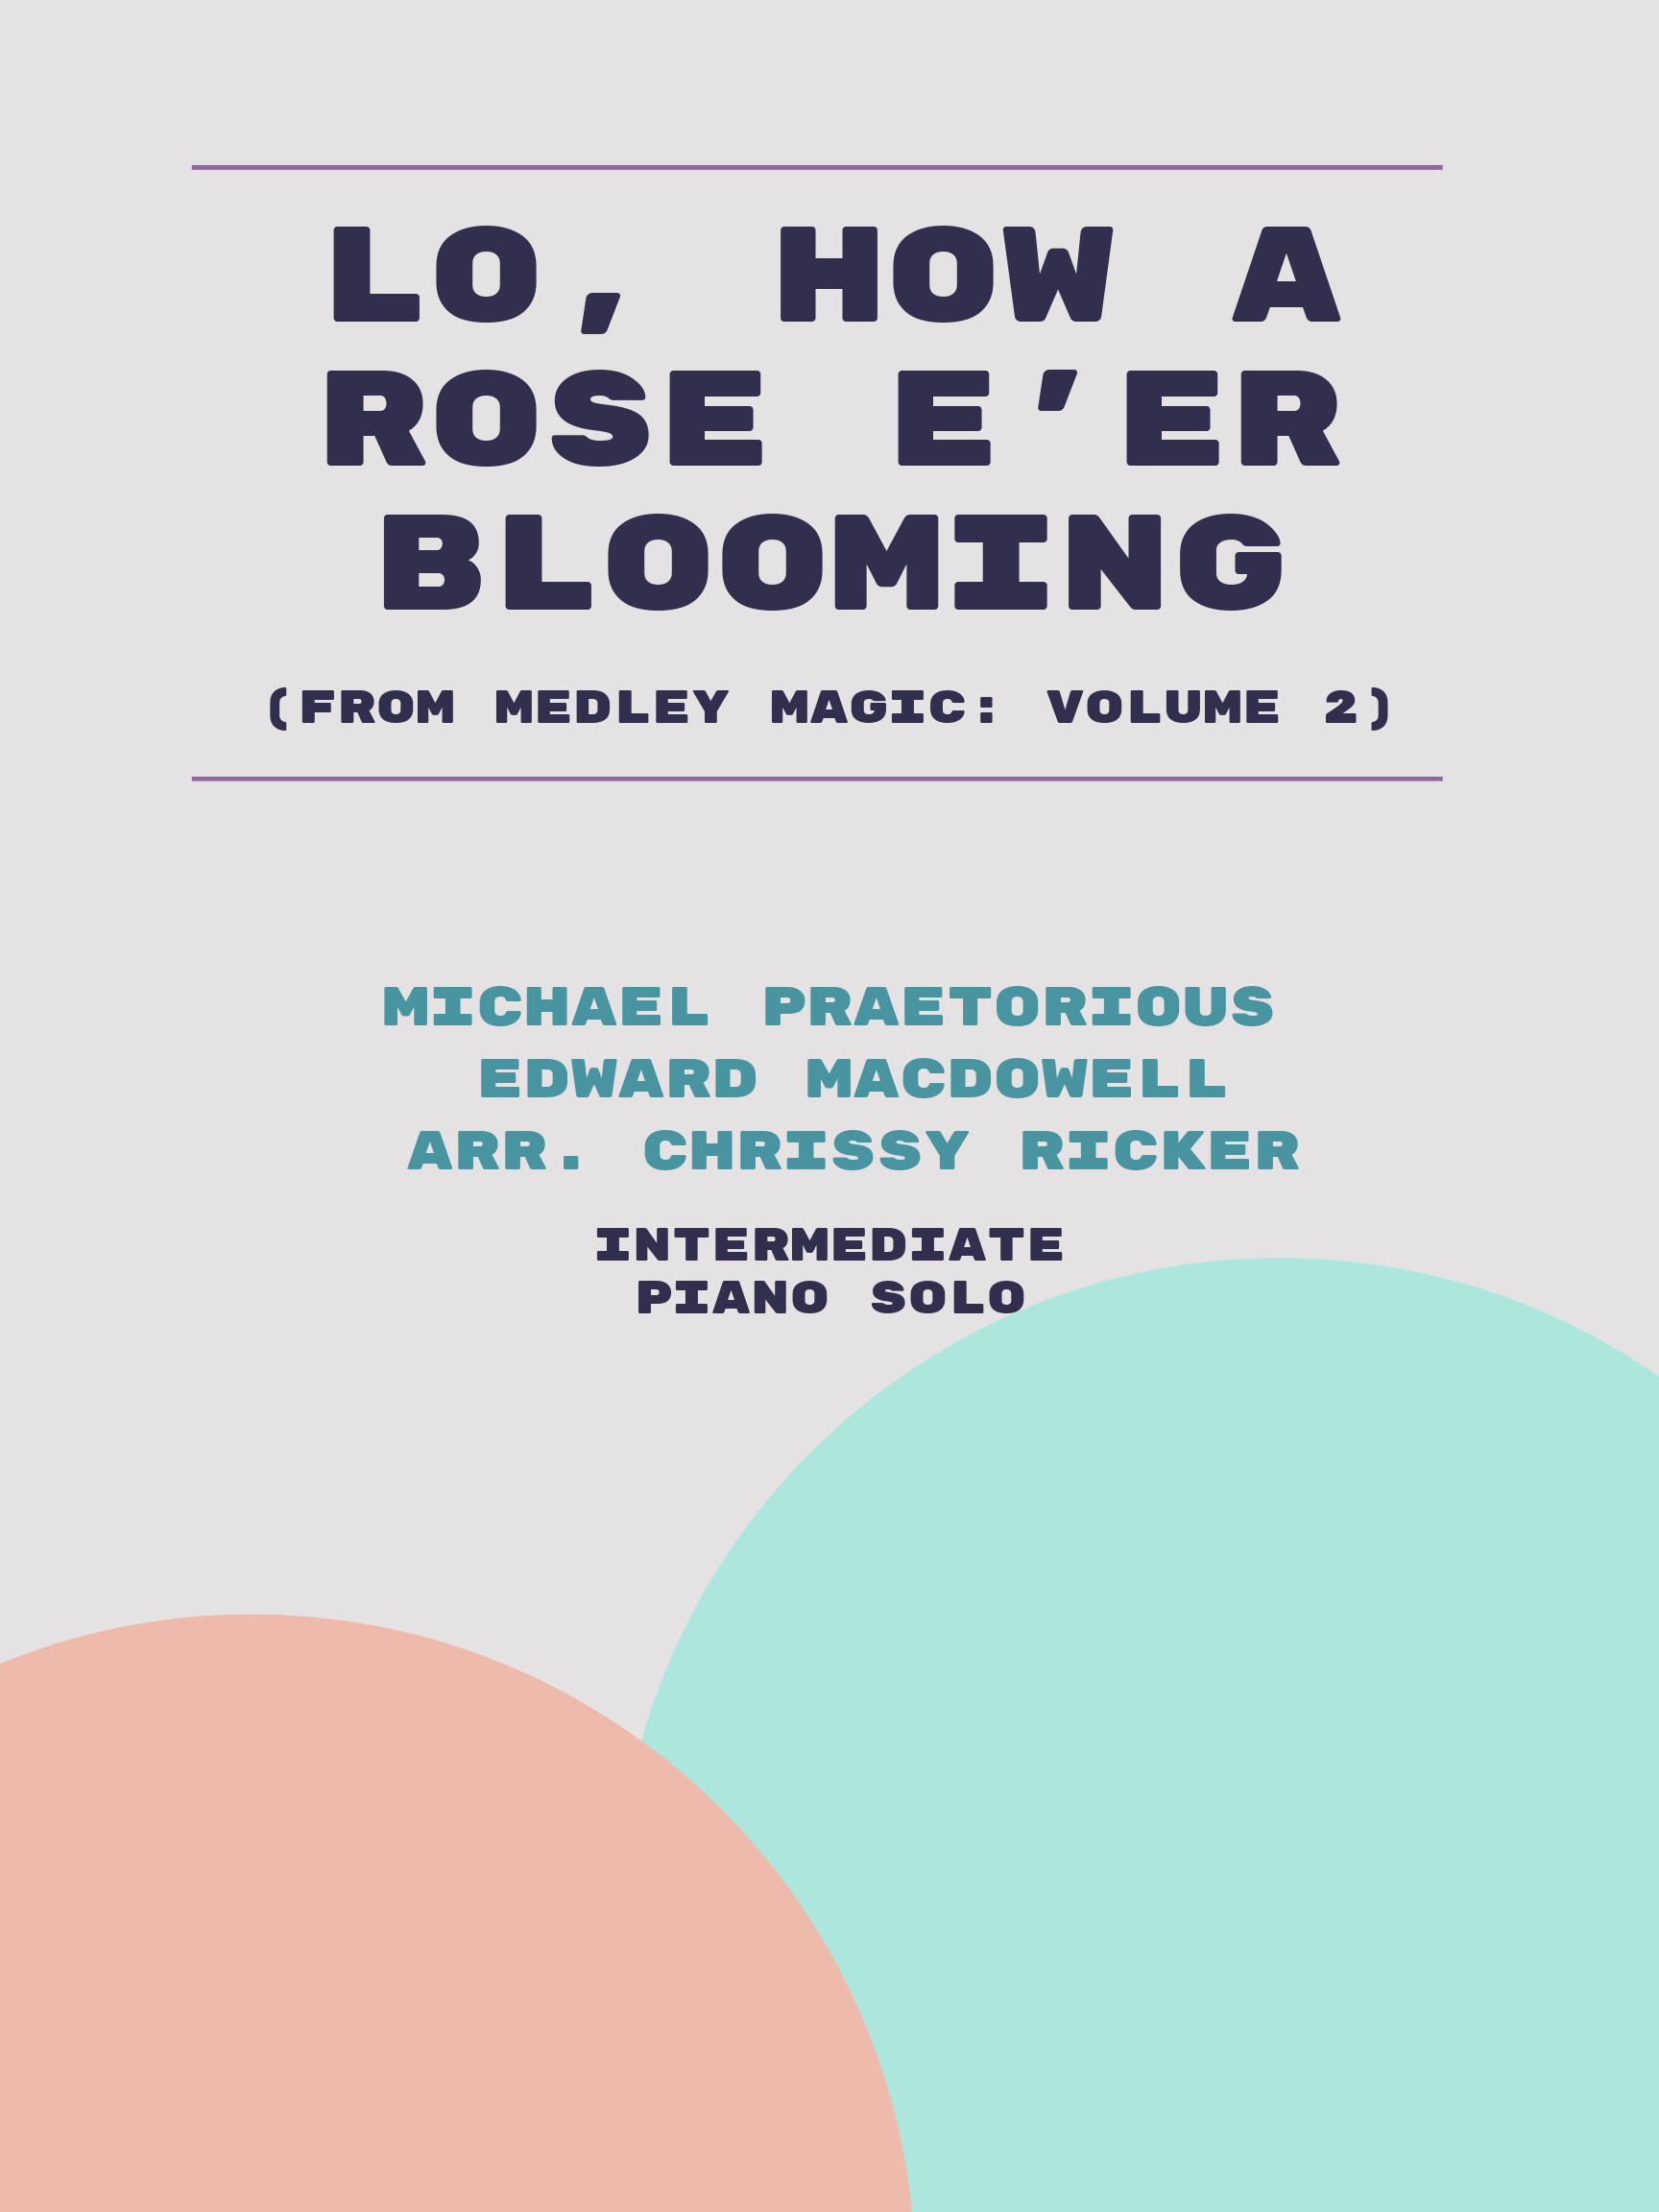 Lo, How a Rose E'er Blooming by Edward MacDowell, Michael Praetorious